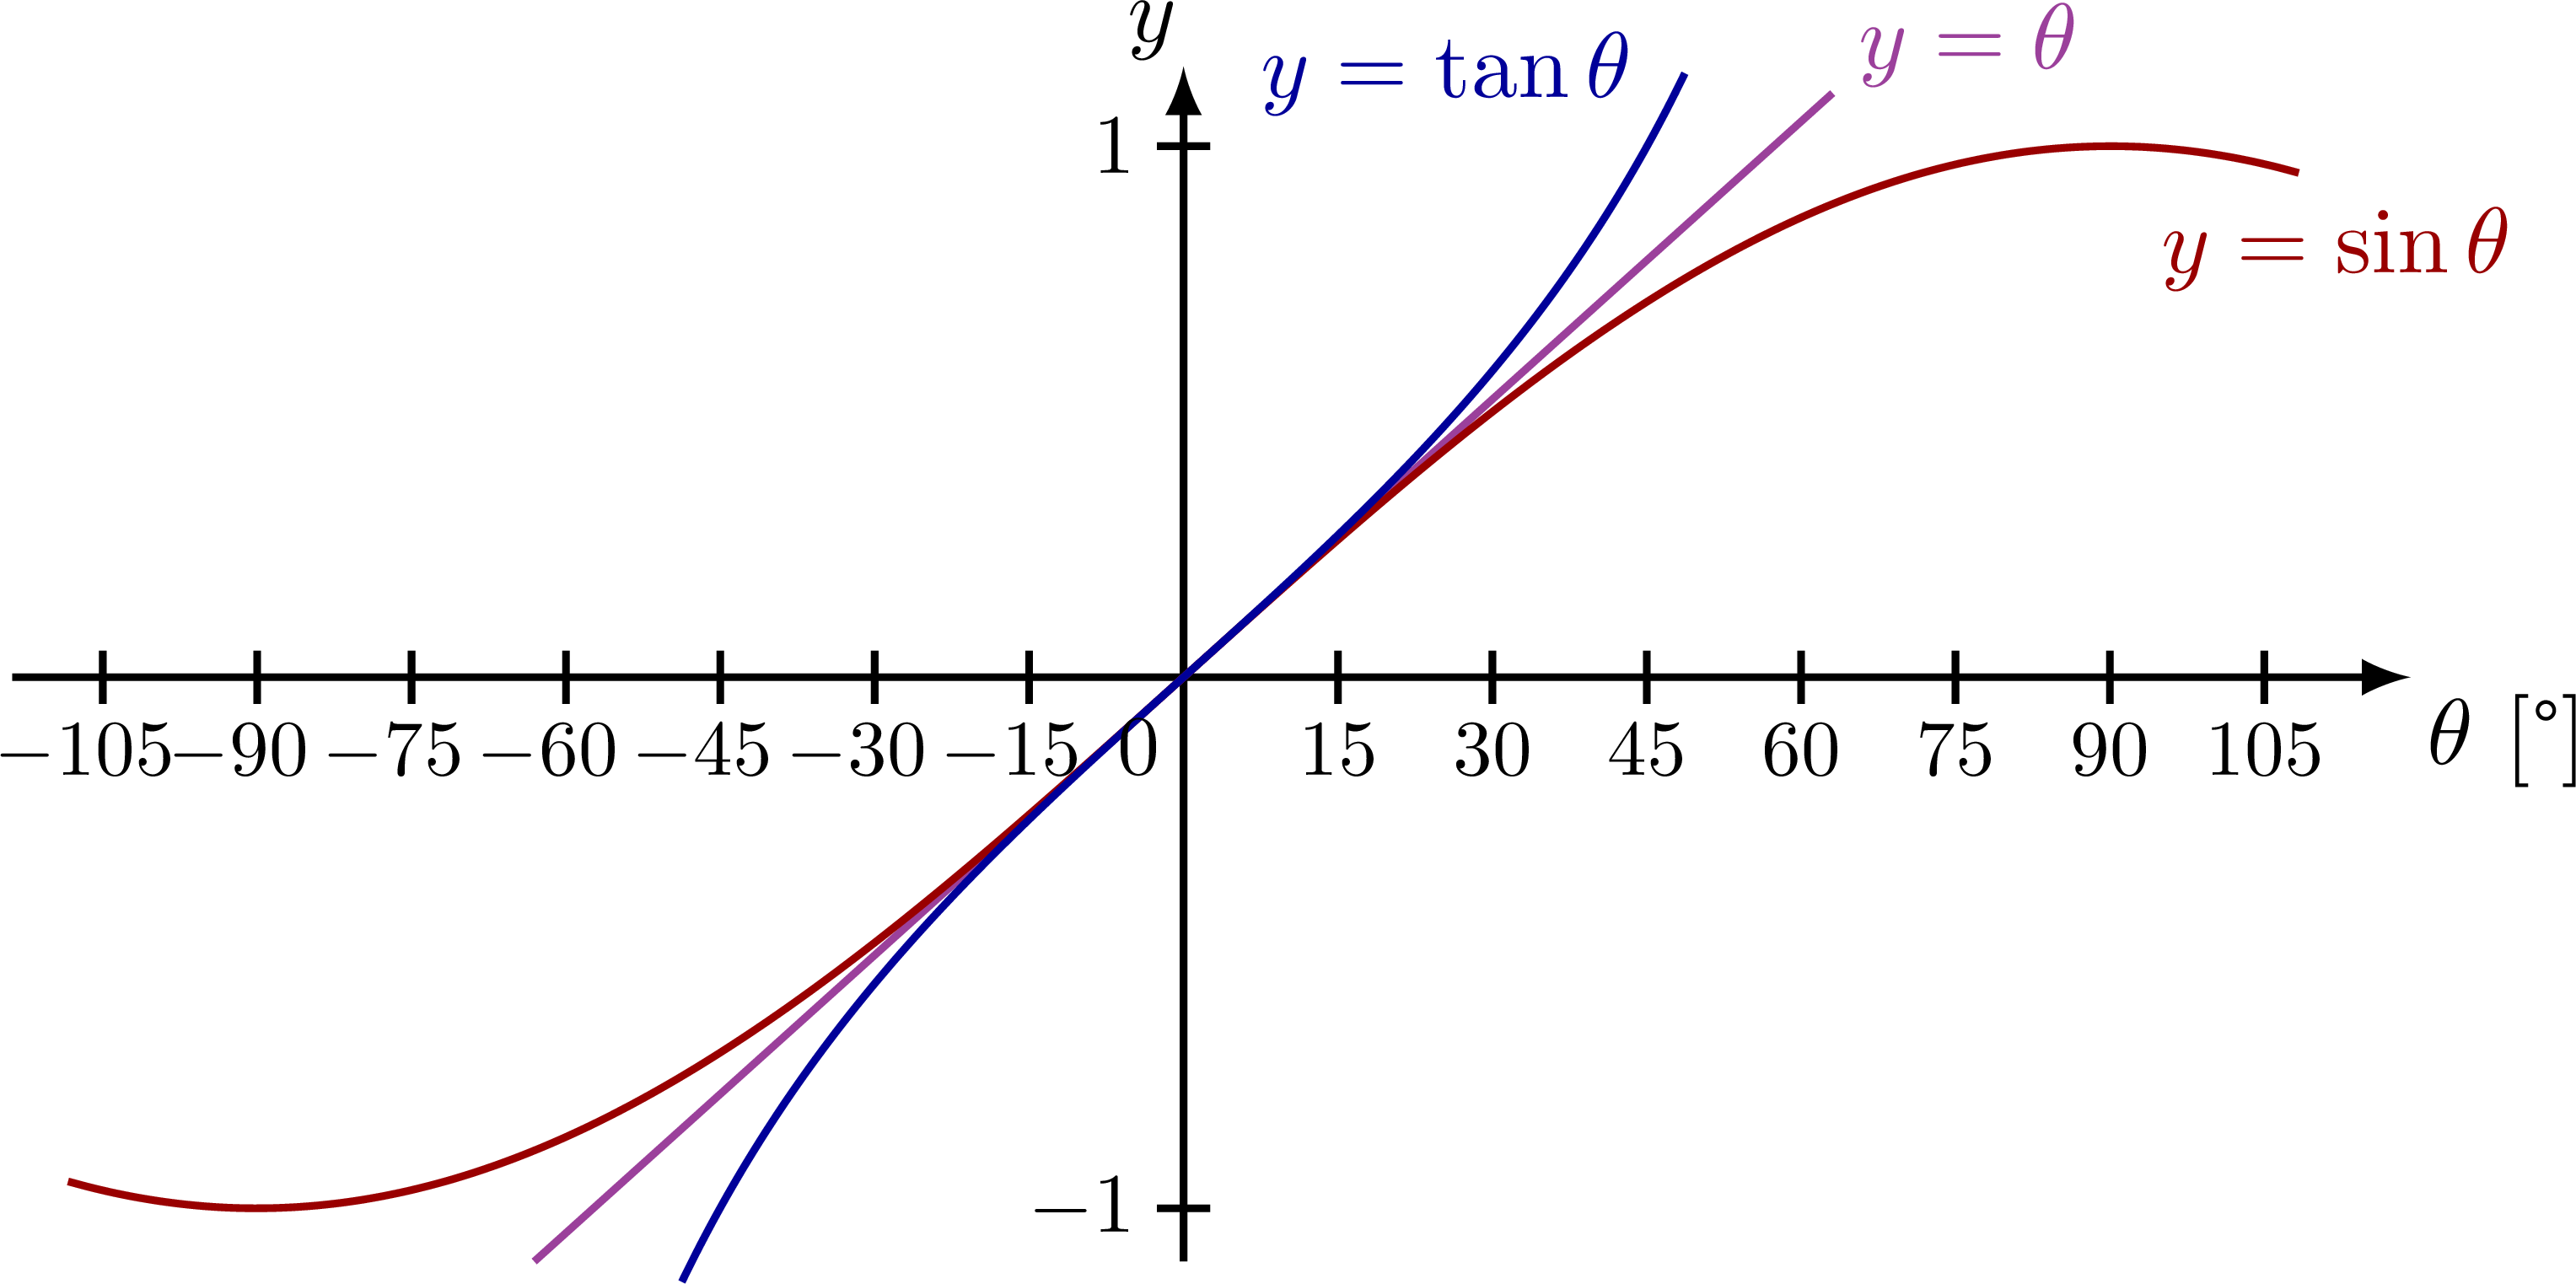 small_angle_approximation-001.png